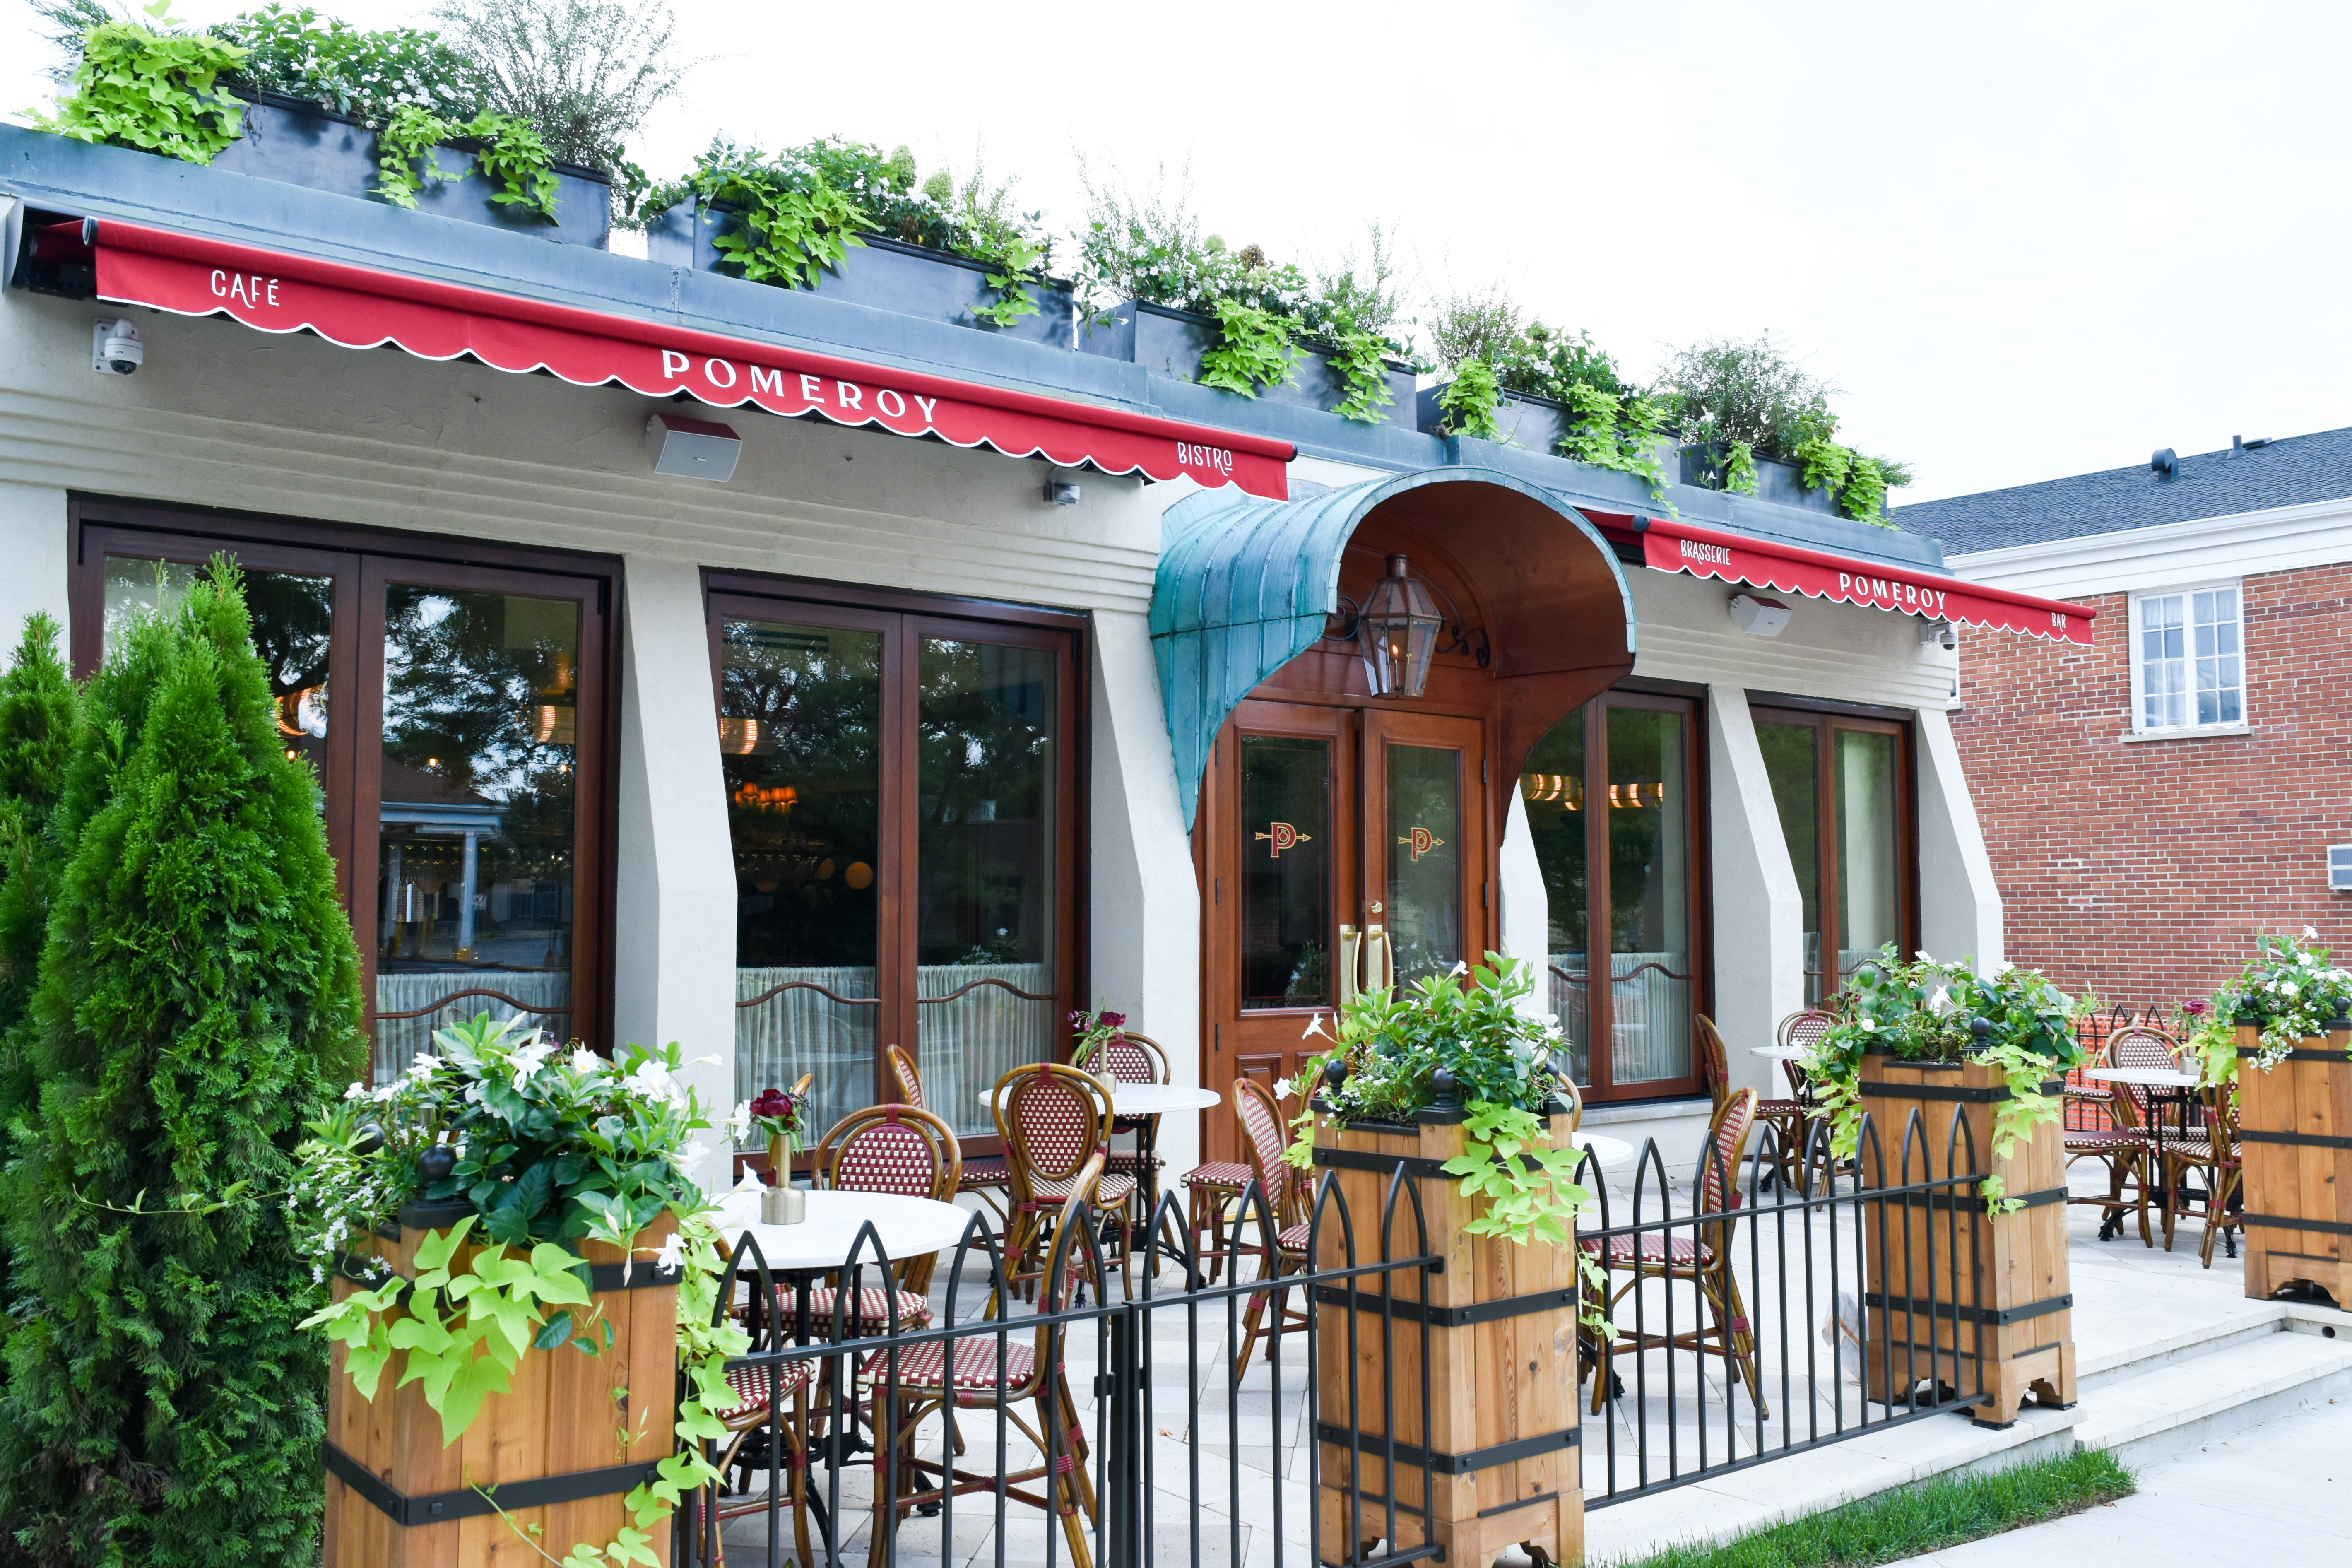 the exterior of a French restaurant with patio and awning